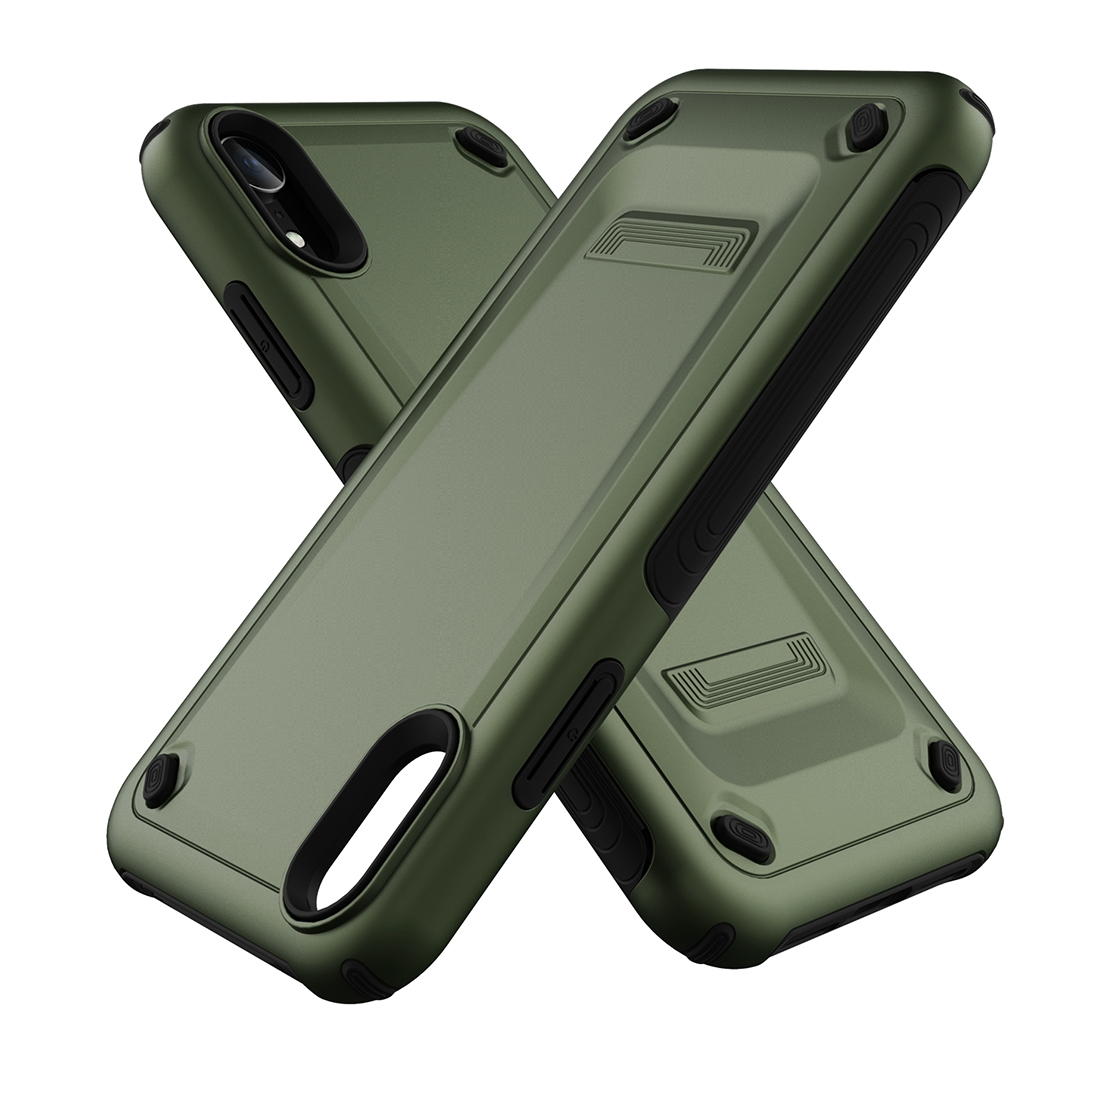 huge discount 0c845 a705b Ultra-thin TPU+PC Mechanic Shockproof Protective Case for iPhone XR (Army  Green)